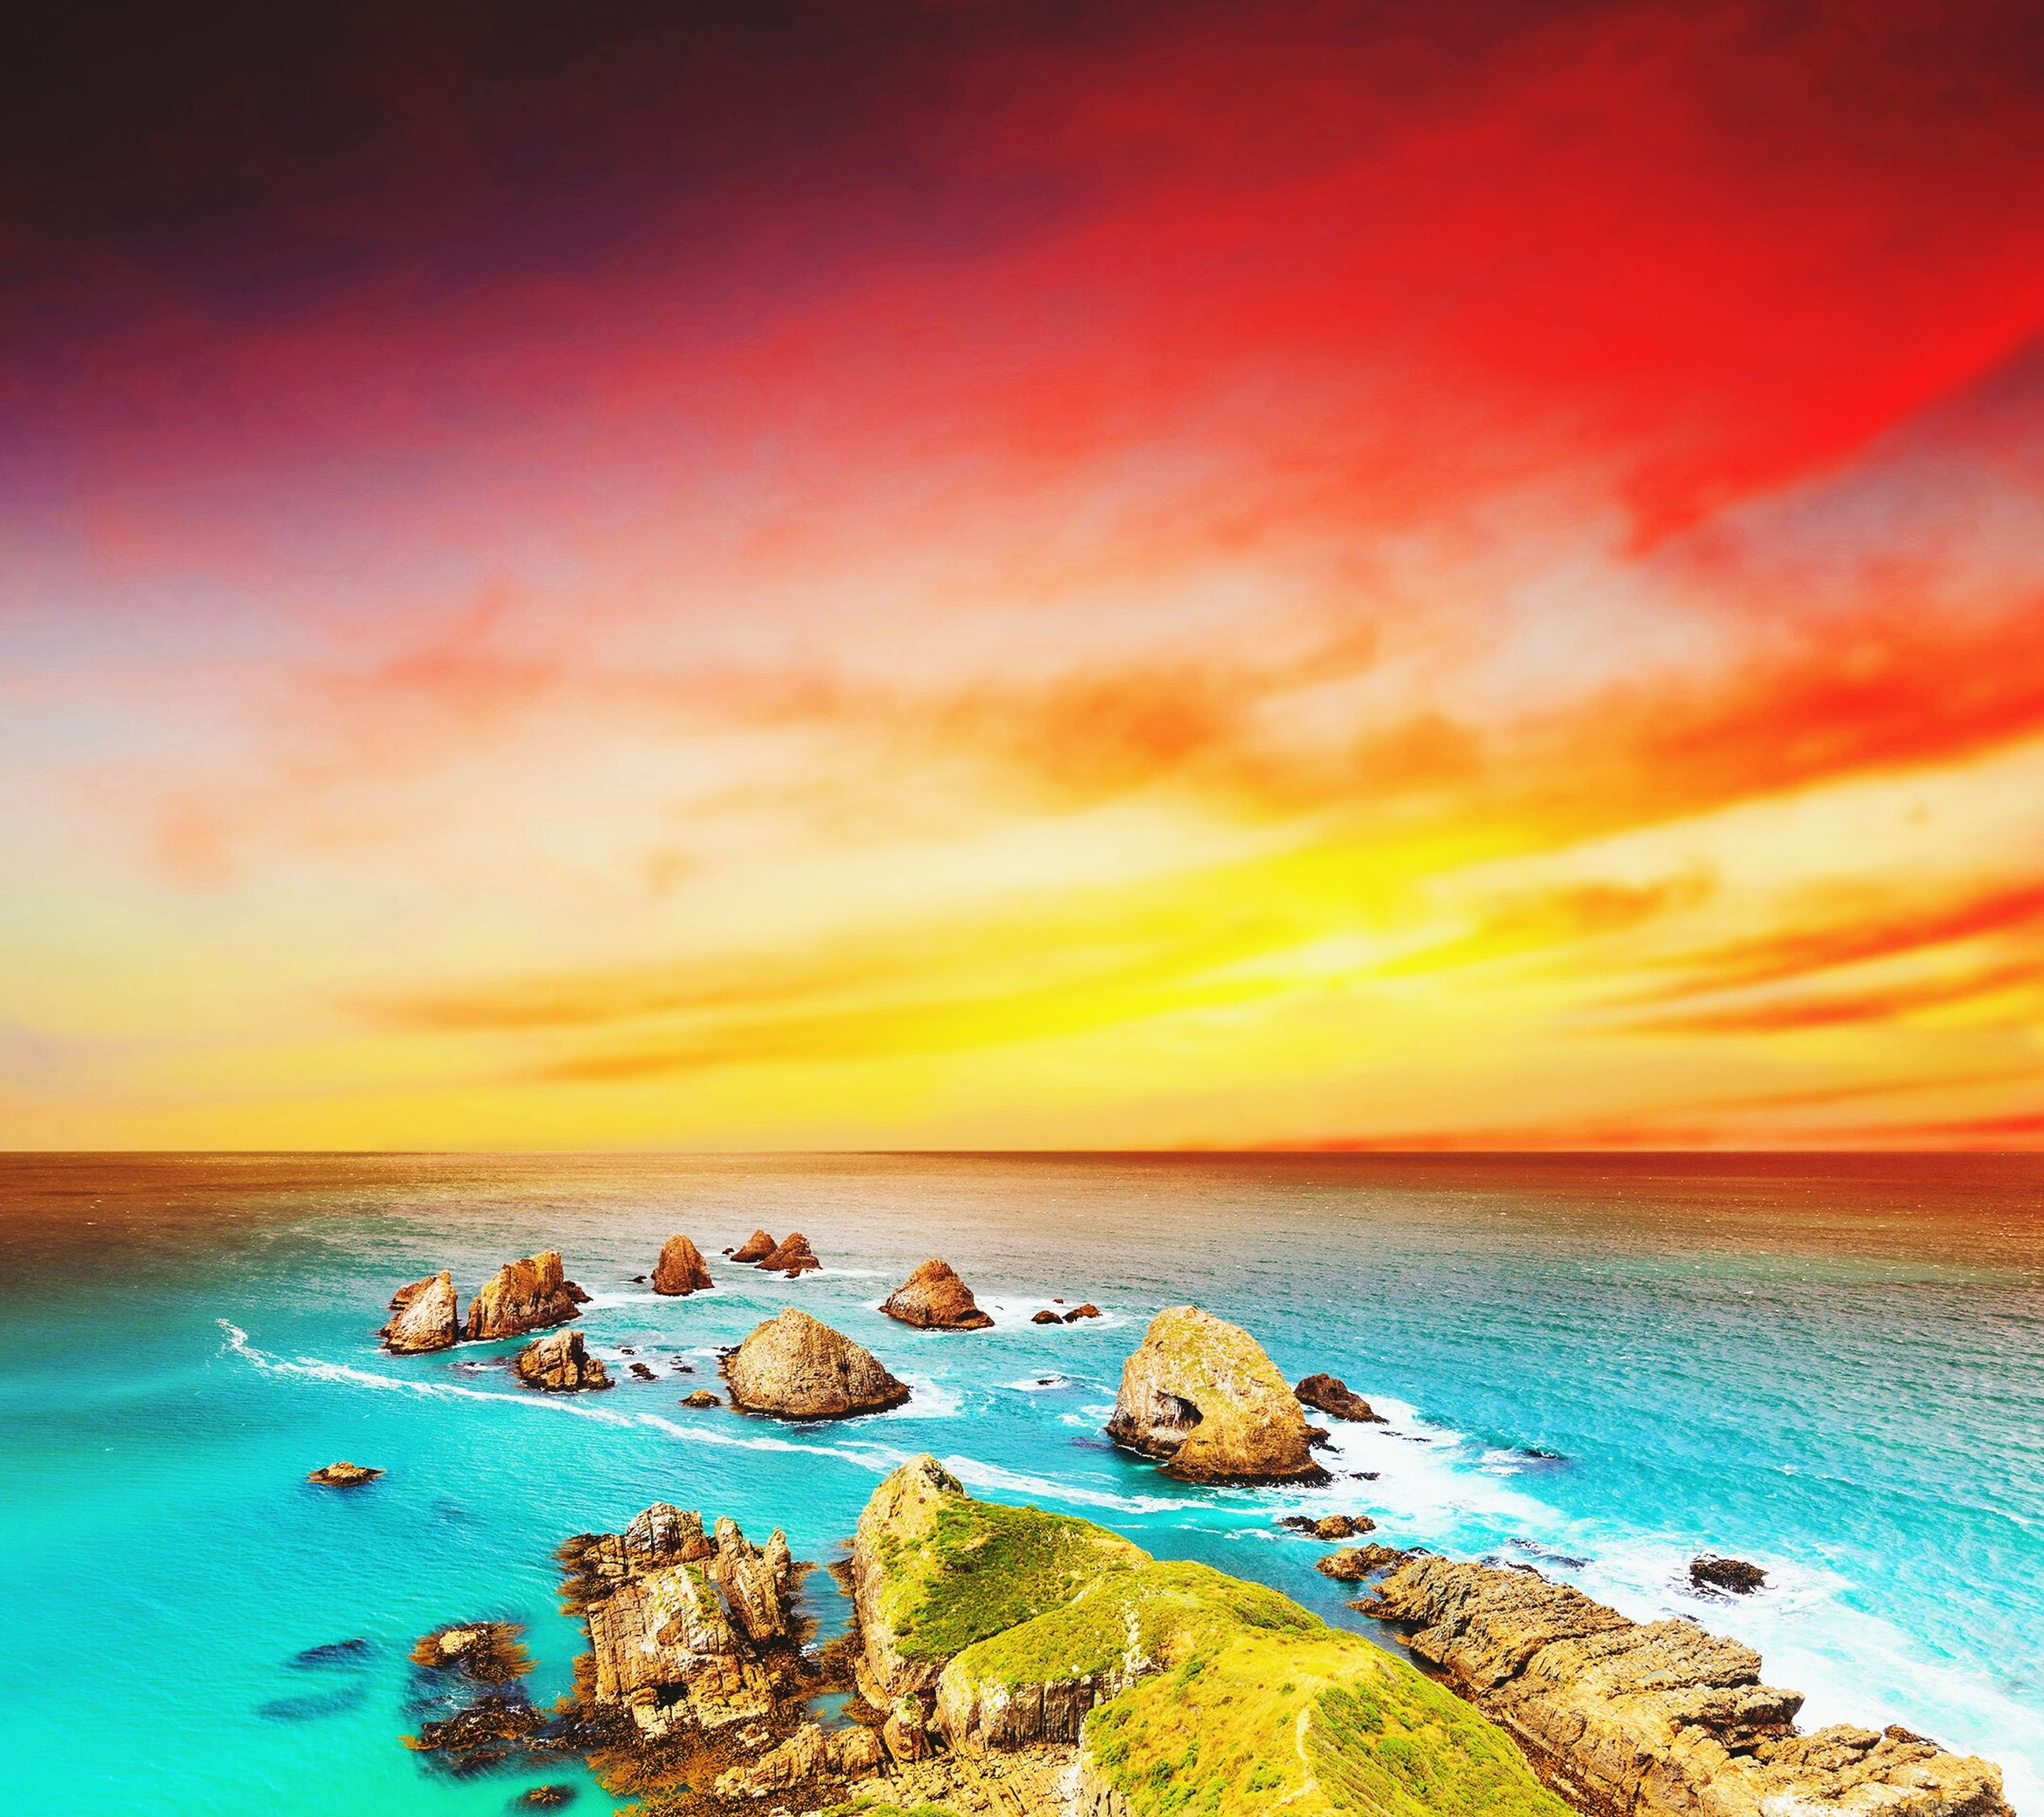 sea, horizon over water, water, sunset, scenics, beauty in nature, tranquil scene, sky, tranquility, orange color, beach, nature, rock - object, idyllic, shore, cloud - sky, cloud, outdoors, remote, rock formation